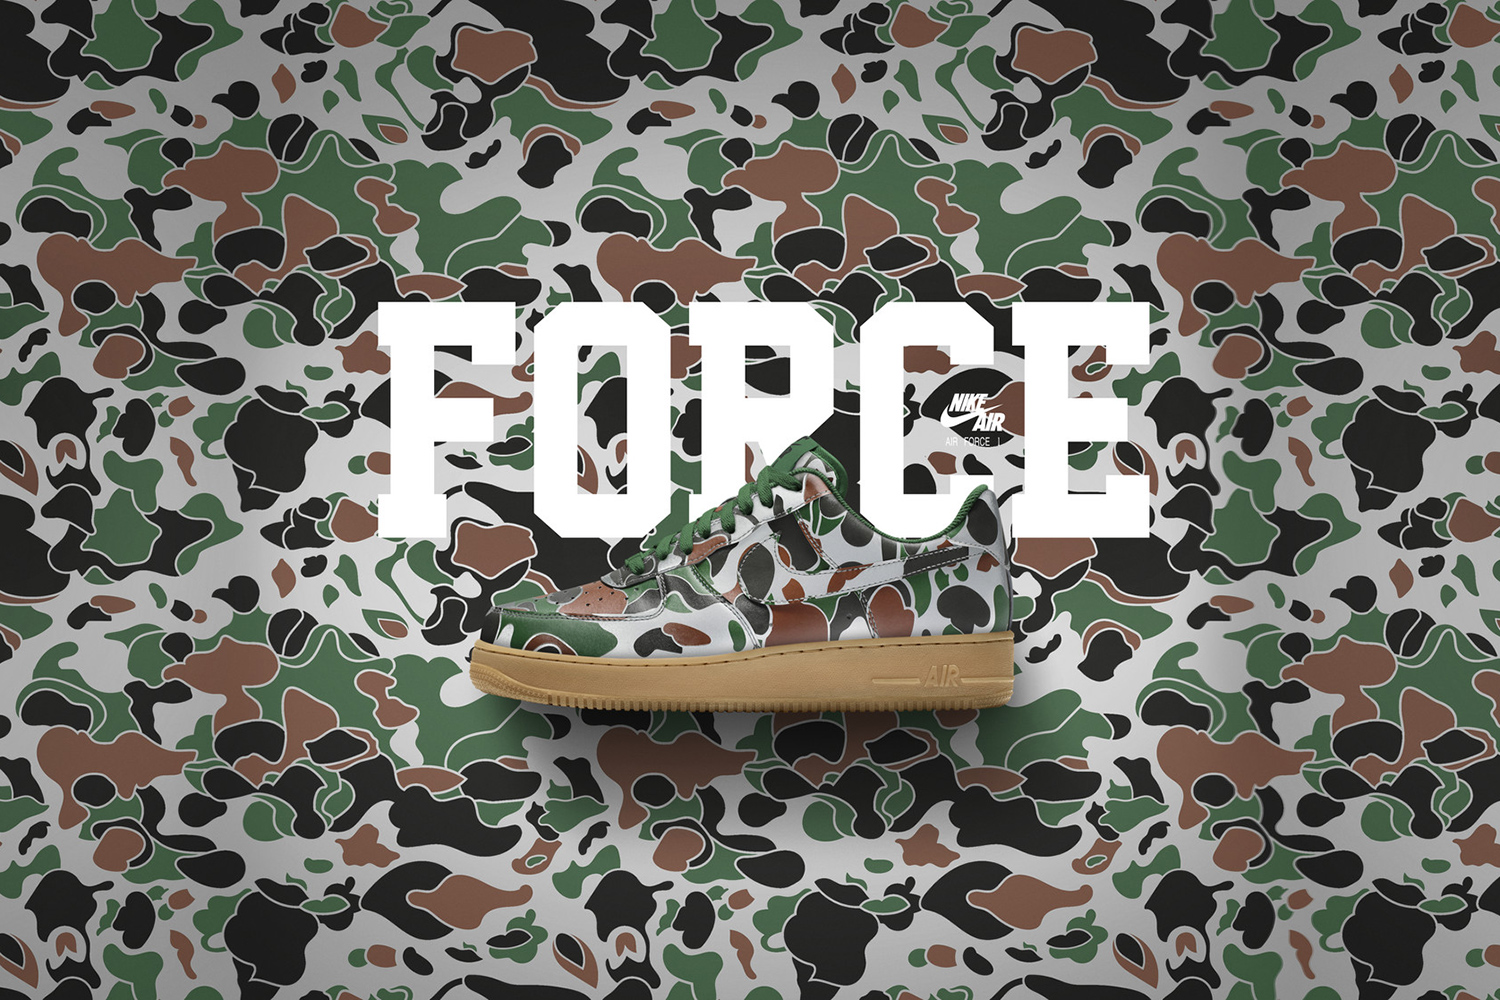 Force New Nike Gets Designs Id Air Camo 1 wn0mN8